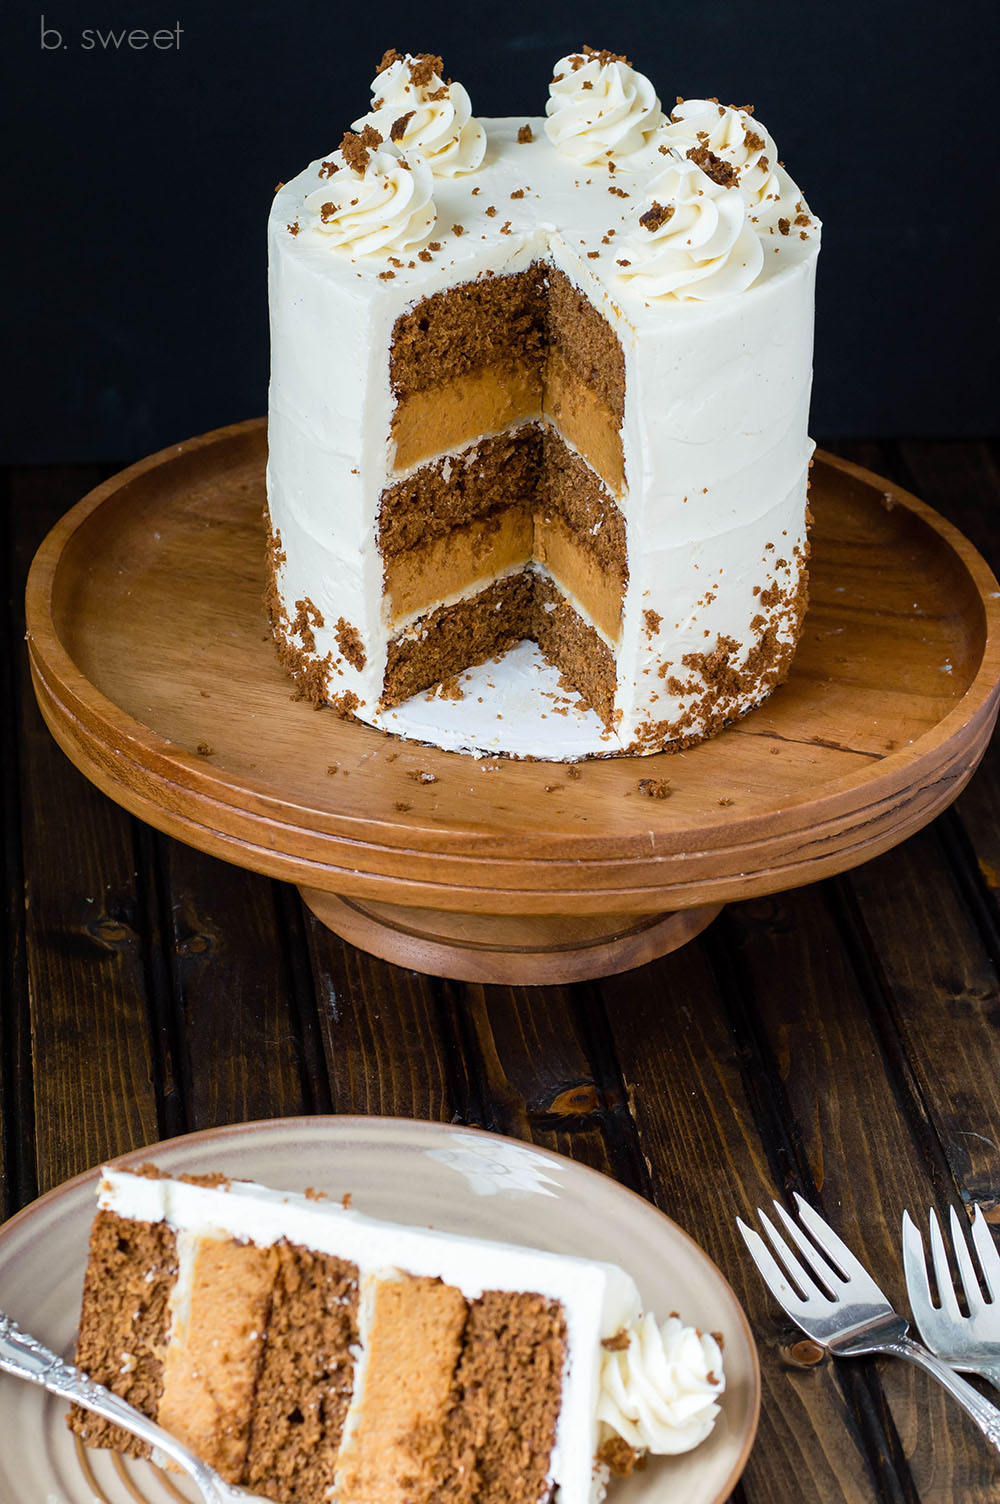 Ginger Spice Pumpkin Pie Cake - b. sweet